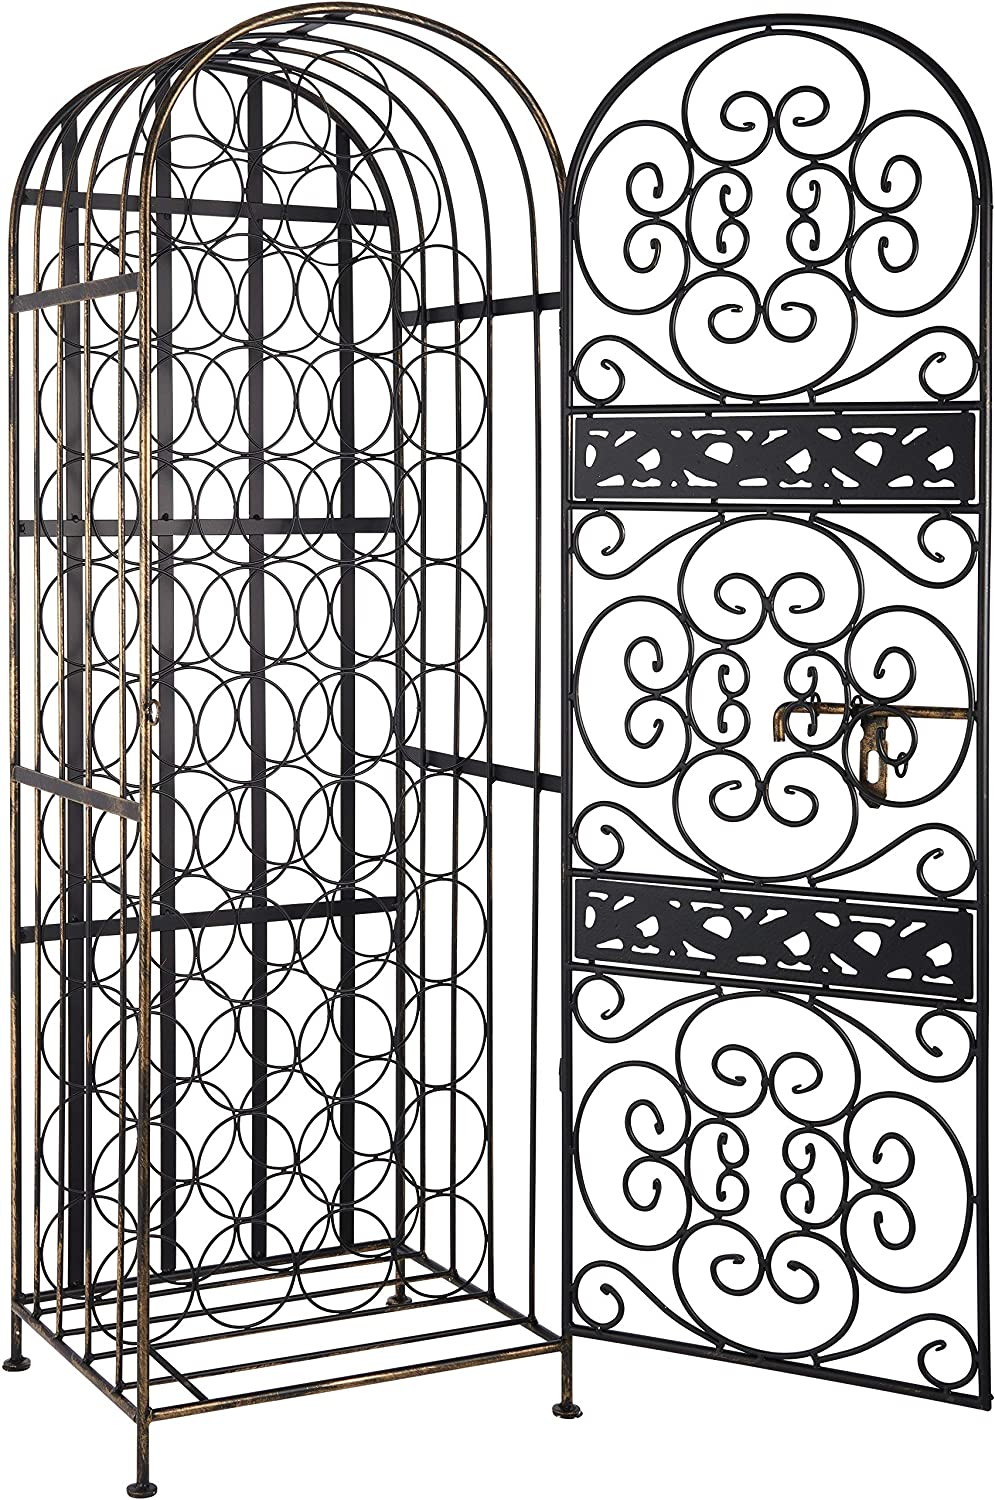 Wine Enthusiast Renaissance Wrought Iron Wine Jail - Large Wine Rack, Holds 45 Bottles